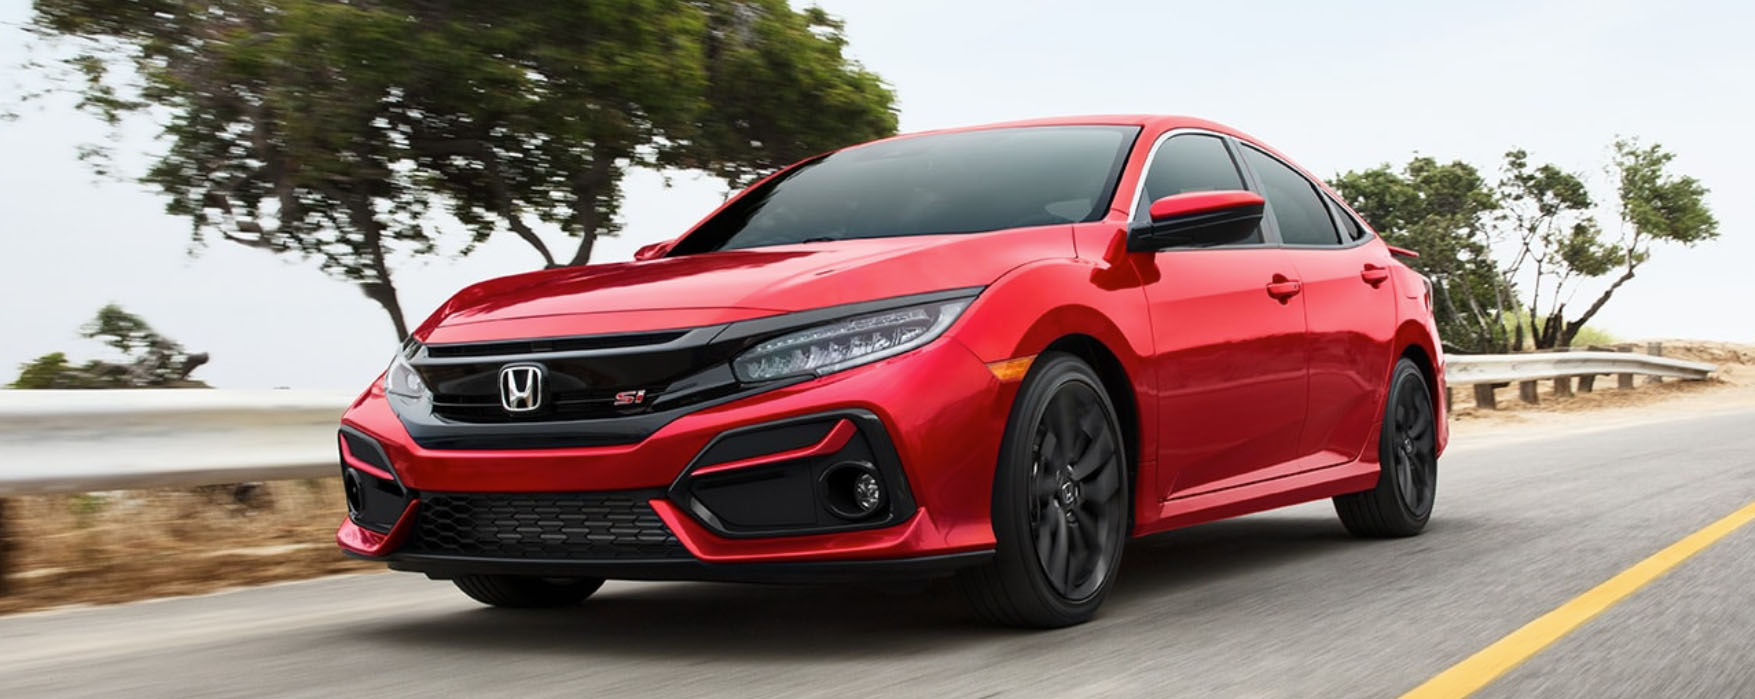 2020 Honda Civic Si Sedan Appearance Main Img